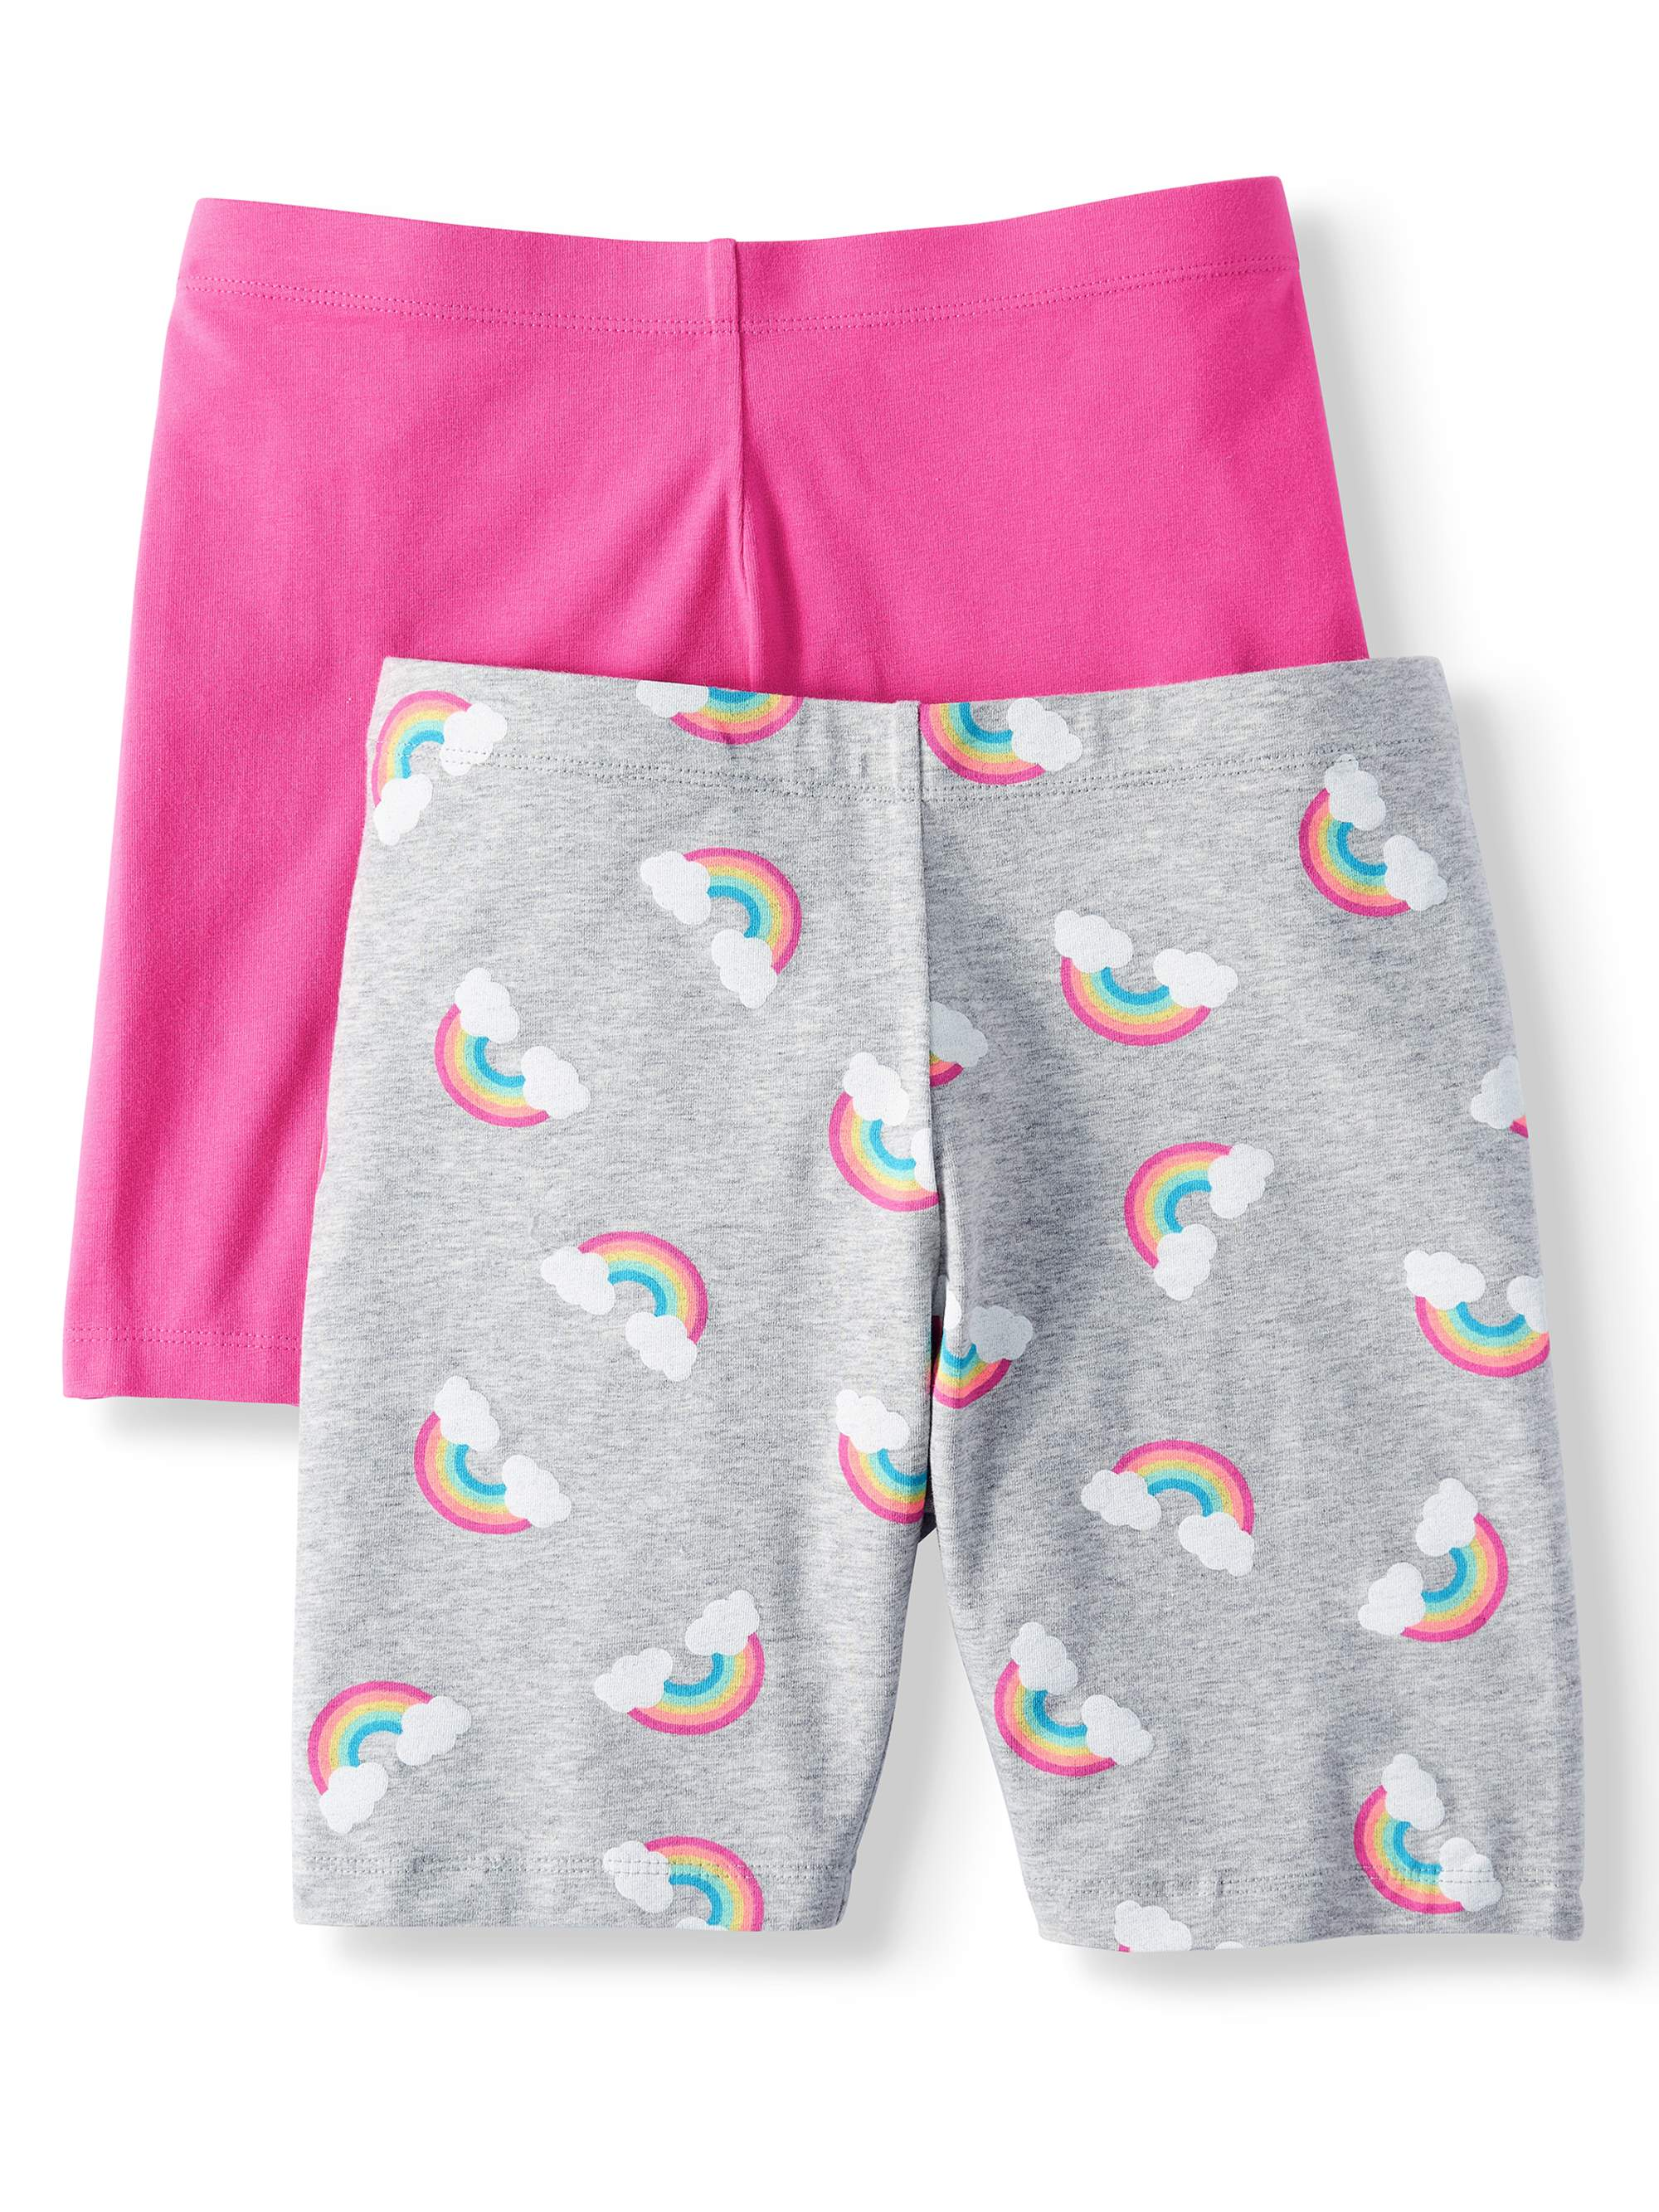 Solid and Printed Bike Shorts, 2-Pack (Little Girls & Big Girls)